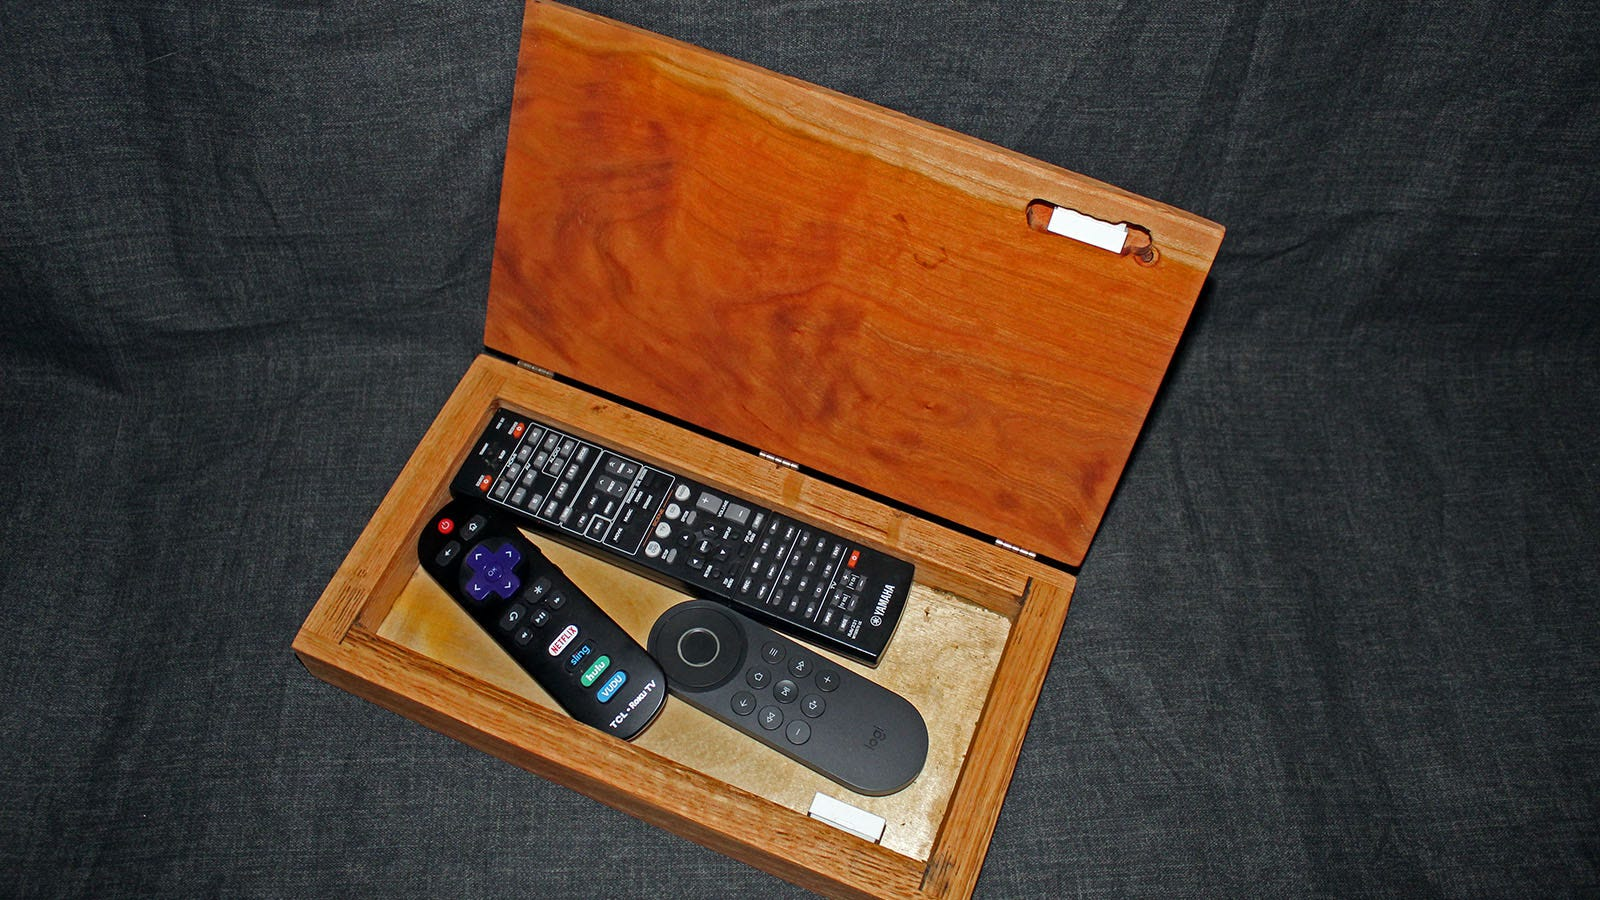 The inside of the box, with three TV remotes, and a Wyze contact sensor.